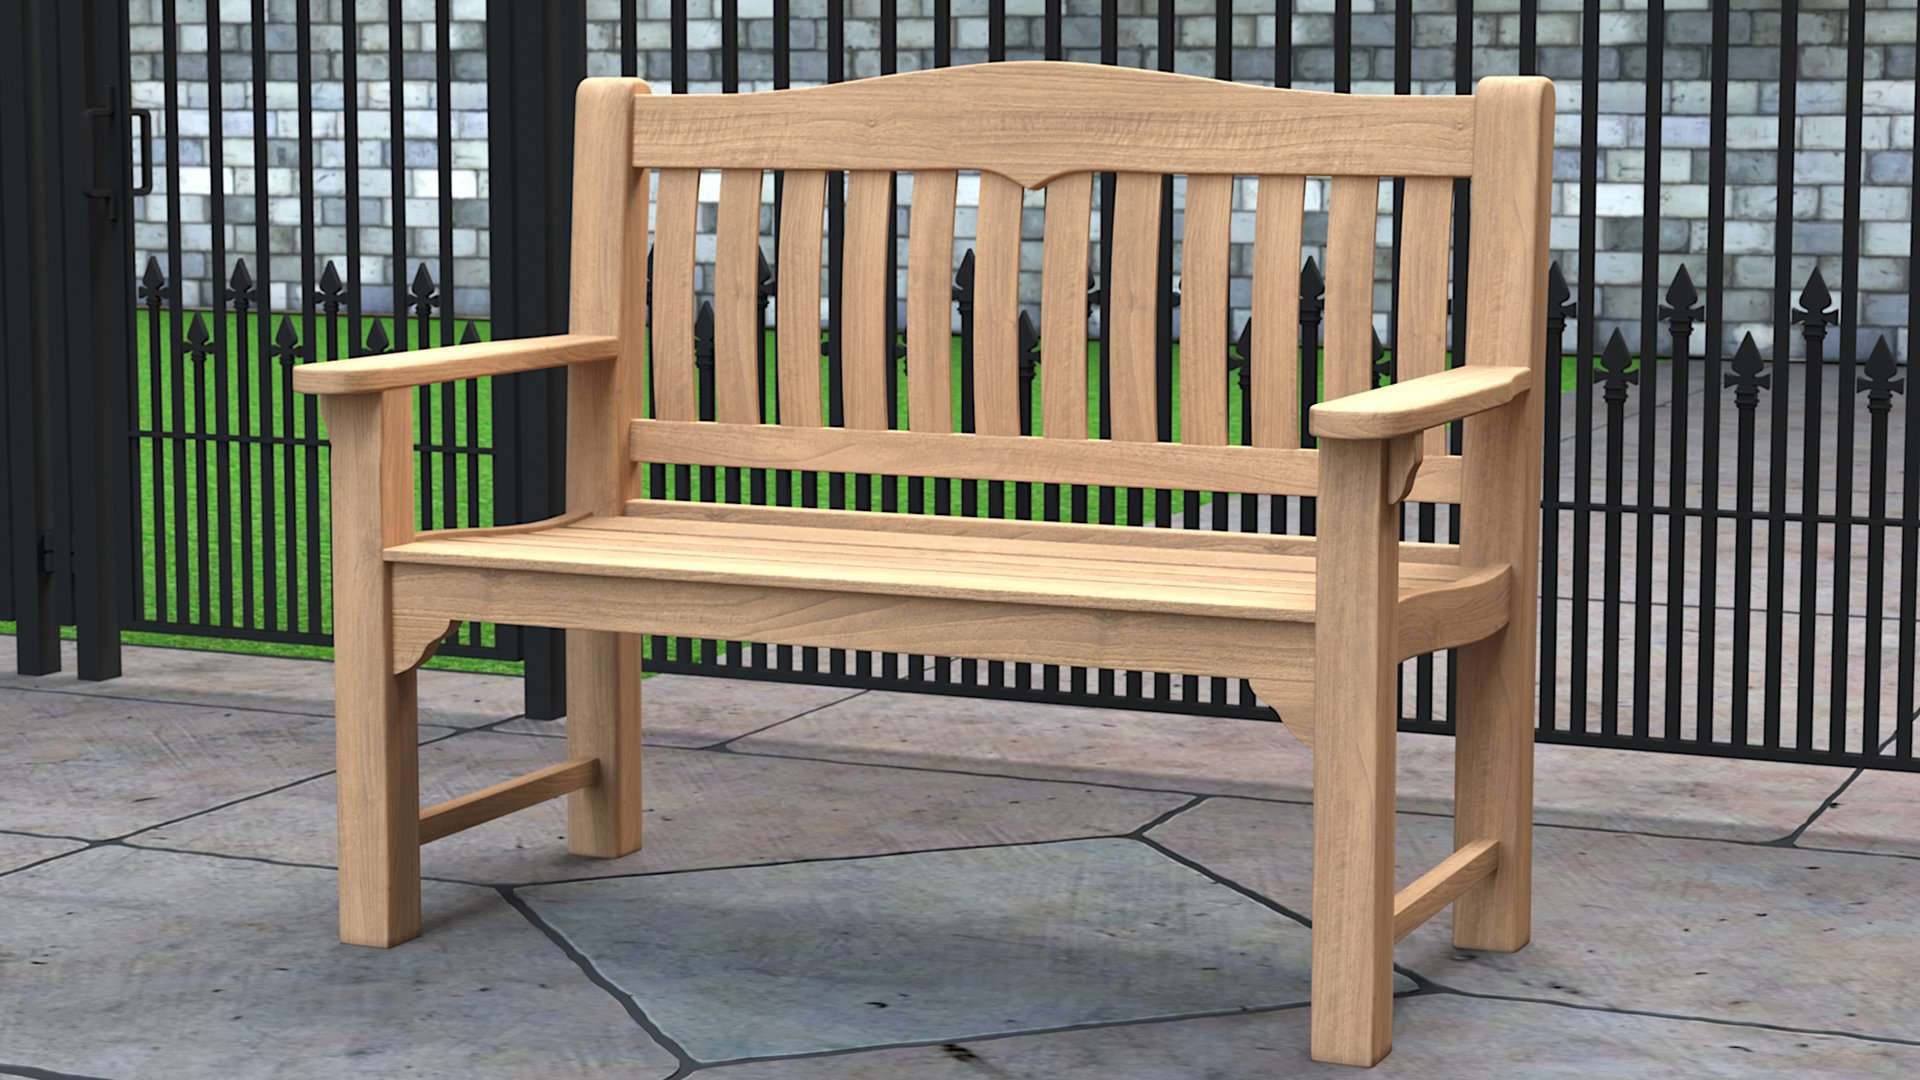 Hereford Teak Garden Bench 2 Seater  - Chic Teak® | Luxury Teak Furniture